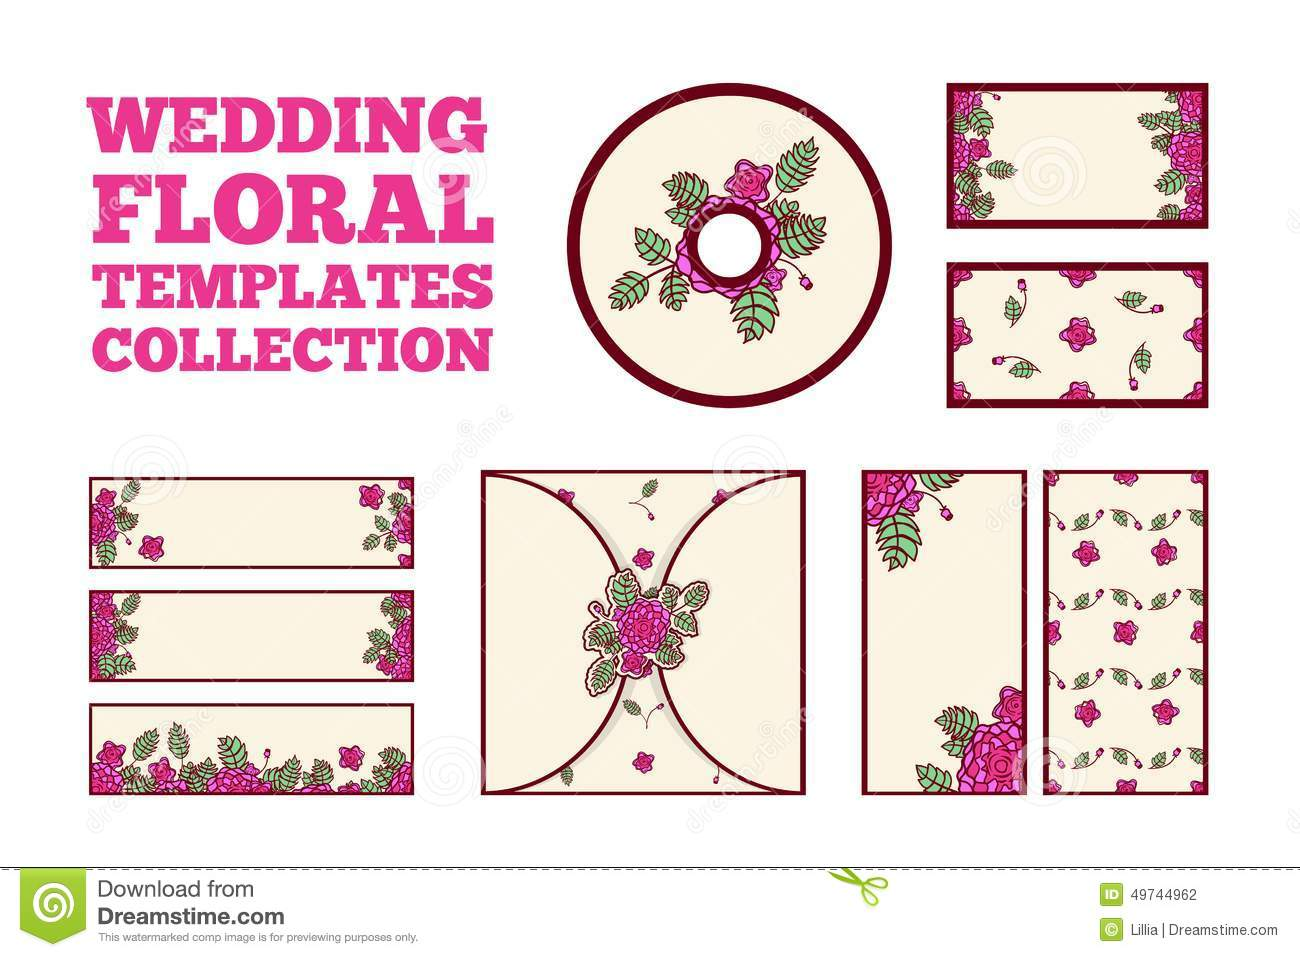 Wedding floral template collection stock vector illustration of wedding floral template collection invitation card three horisontal banners two vertical banners cd cover two cards stopboris Images